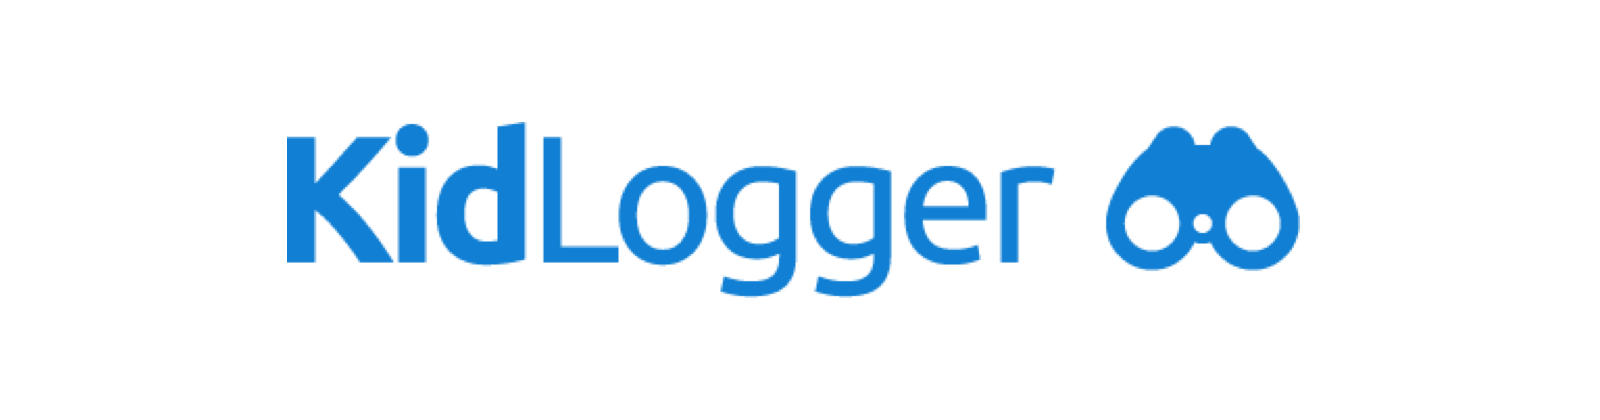 KidLogger Review: Do You Monitor What Your Kids Do Online?